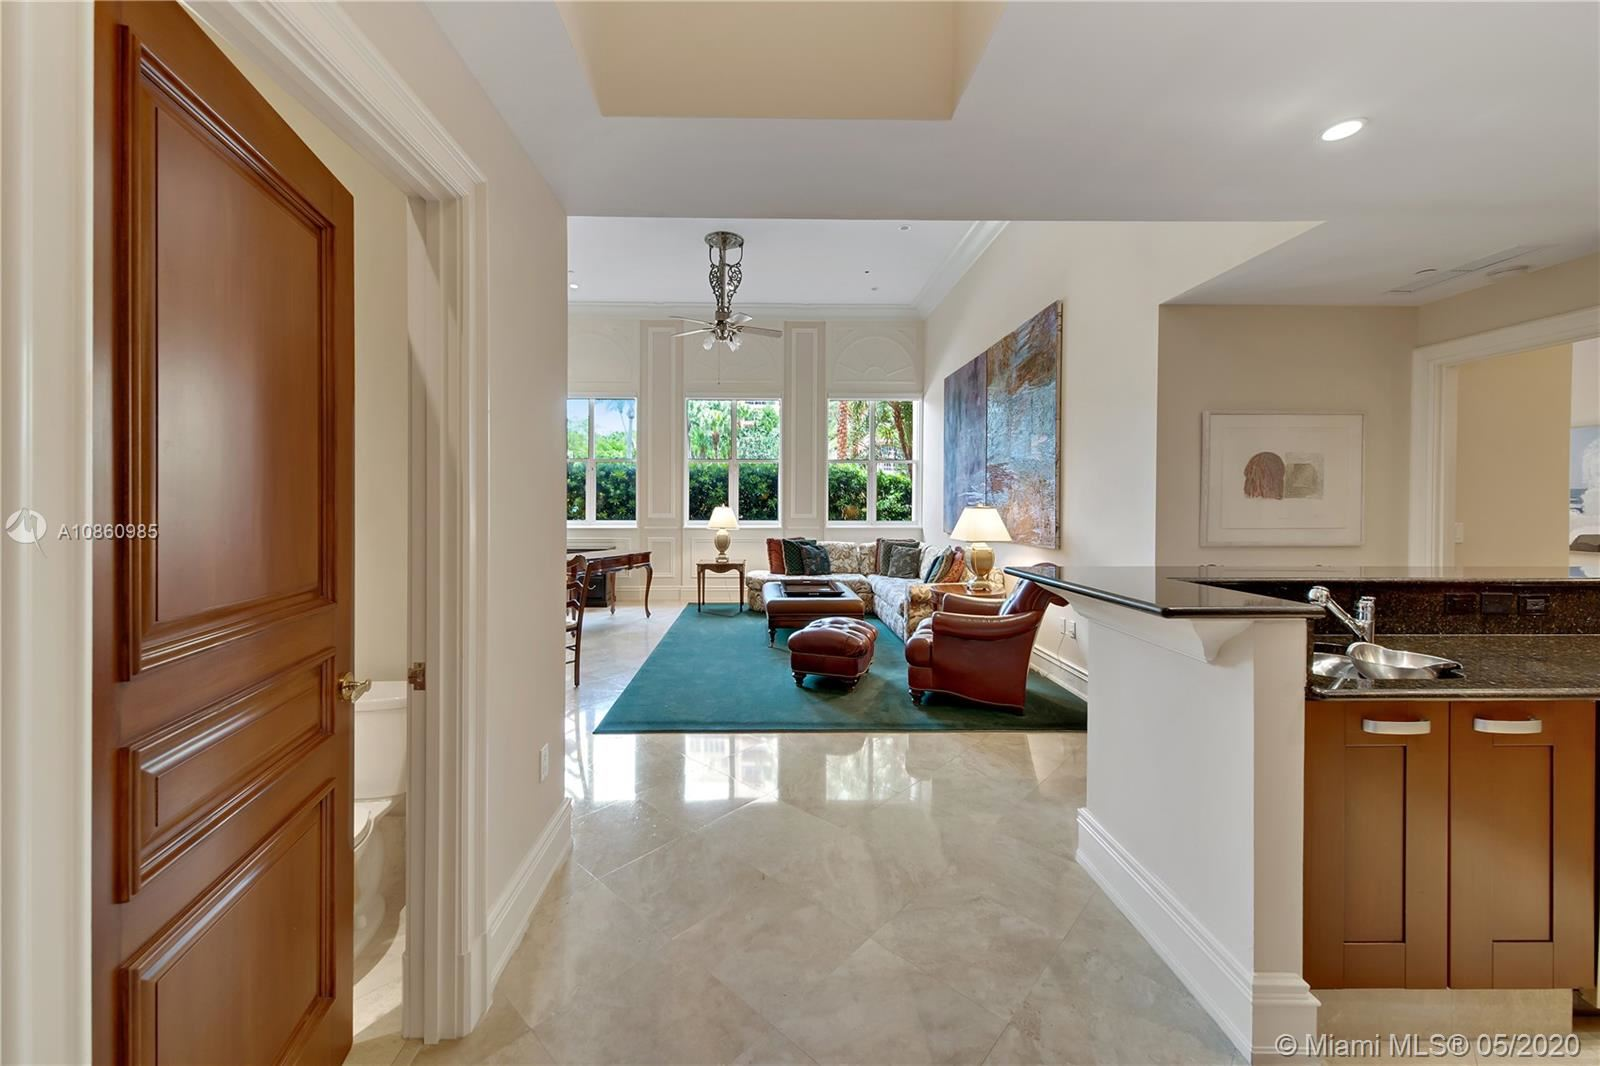 Photo of 60 Edgewater Dr #Lanai East, Coral Gables, FL 33133 (MLS # A10860985)